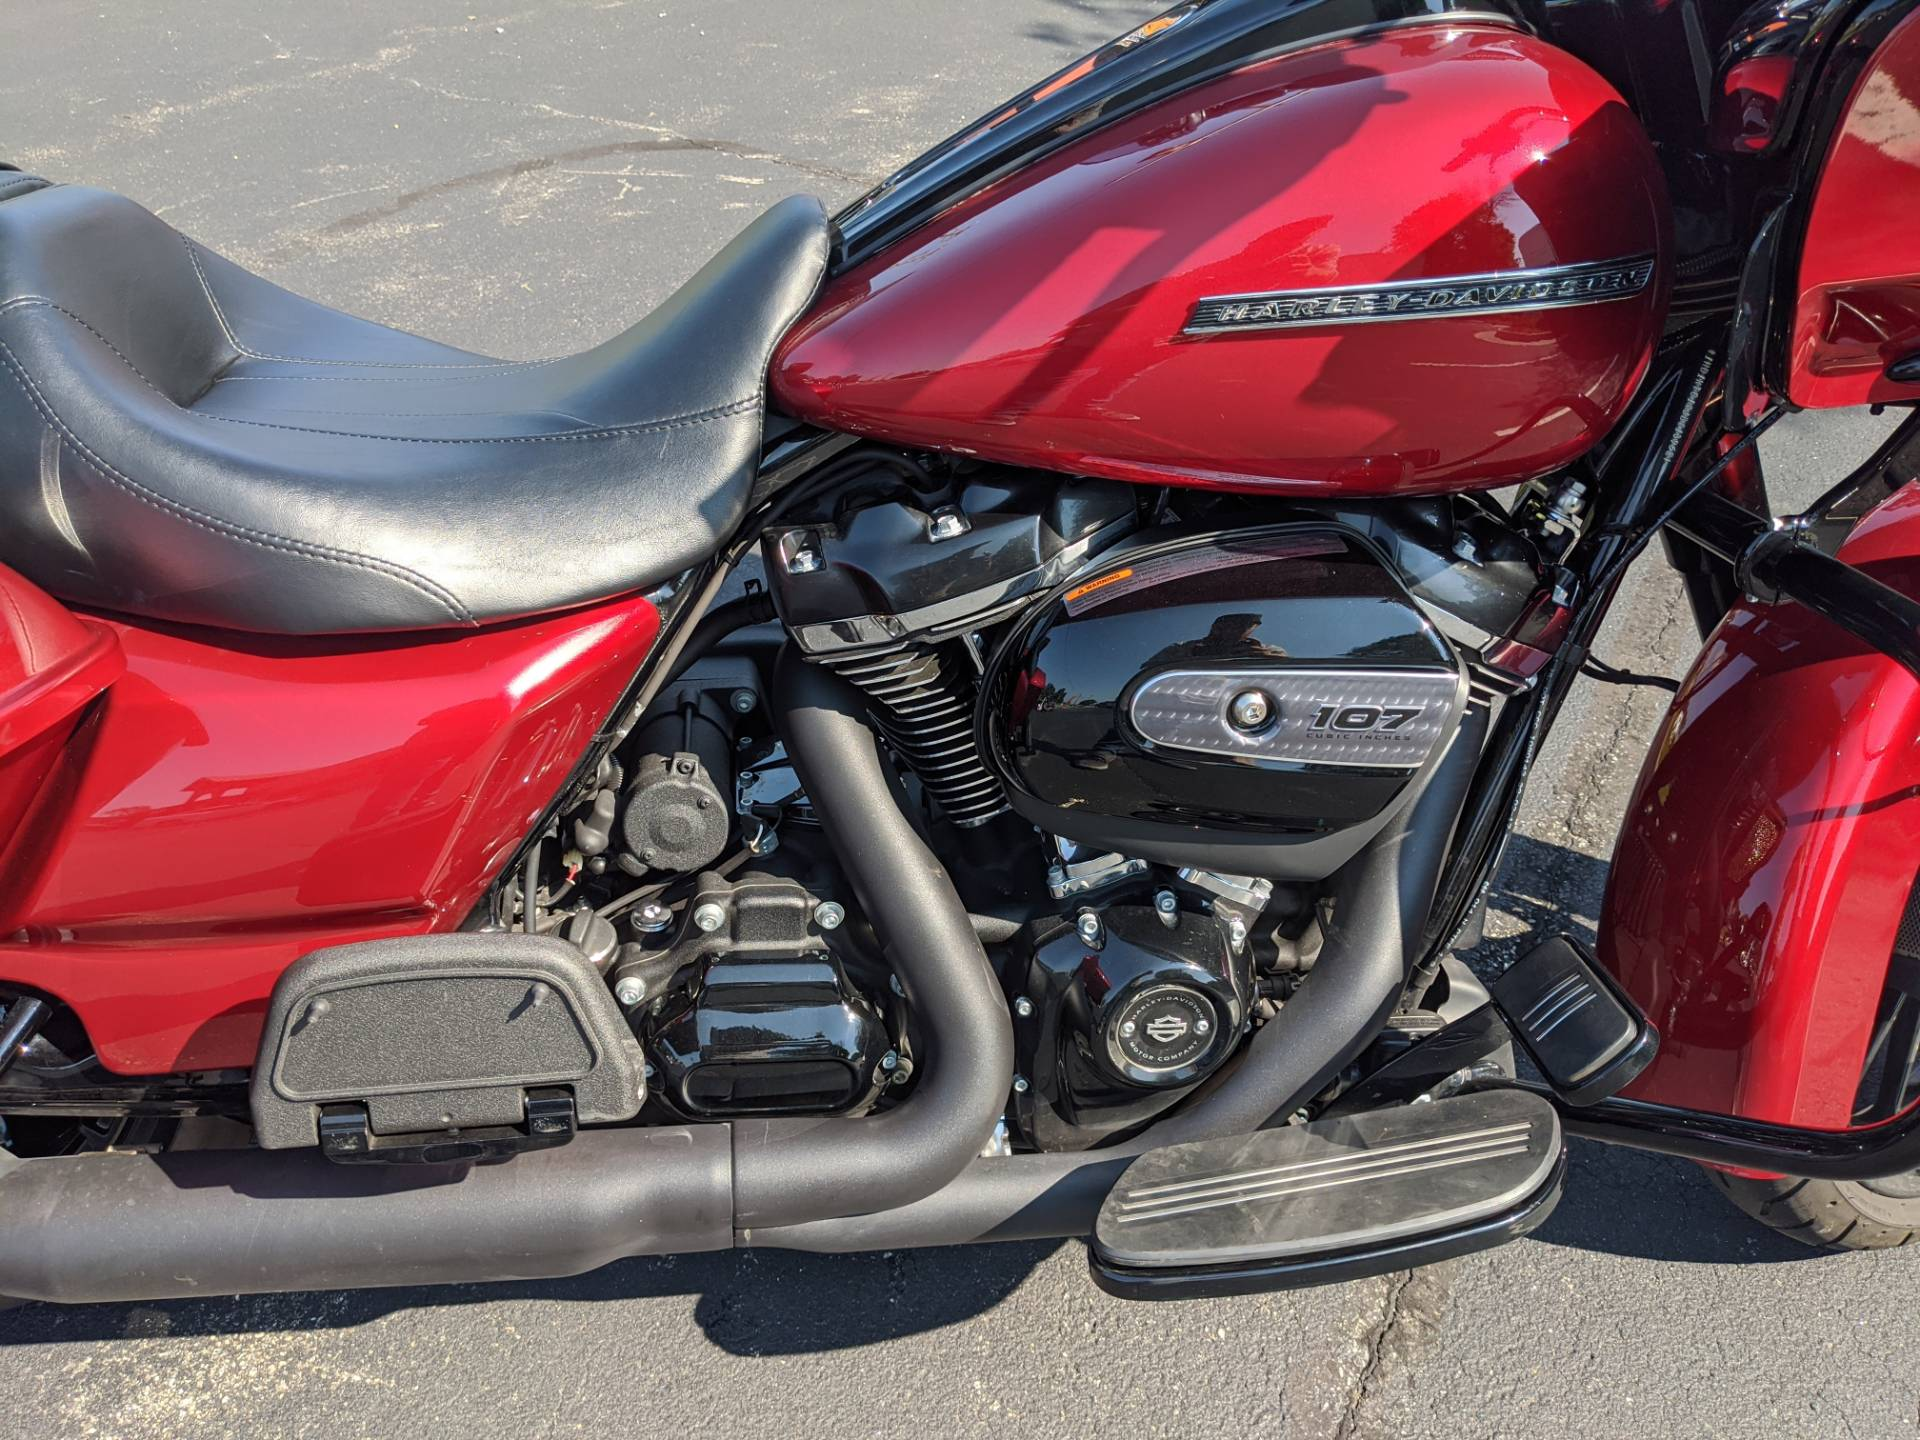 2018 Harley-Davidson Road Glide® Special in Lynchburg, Virginia - Photo 19